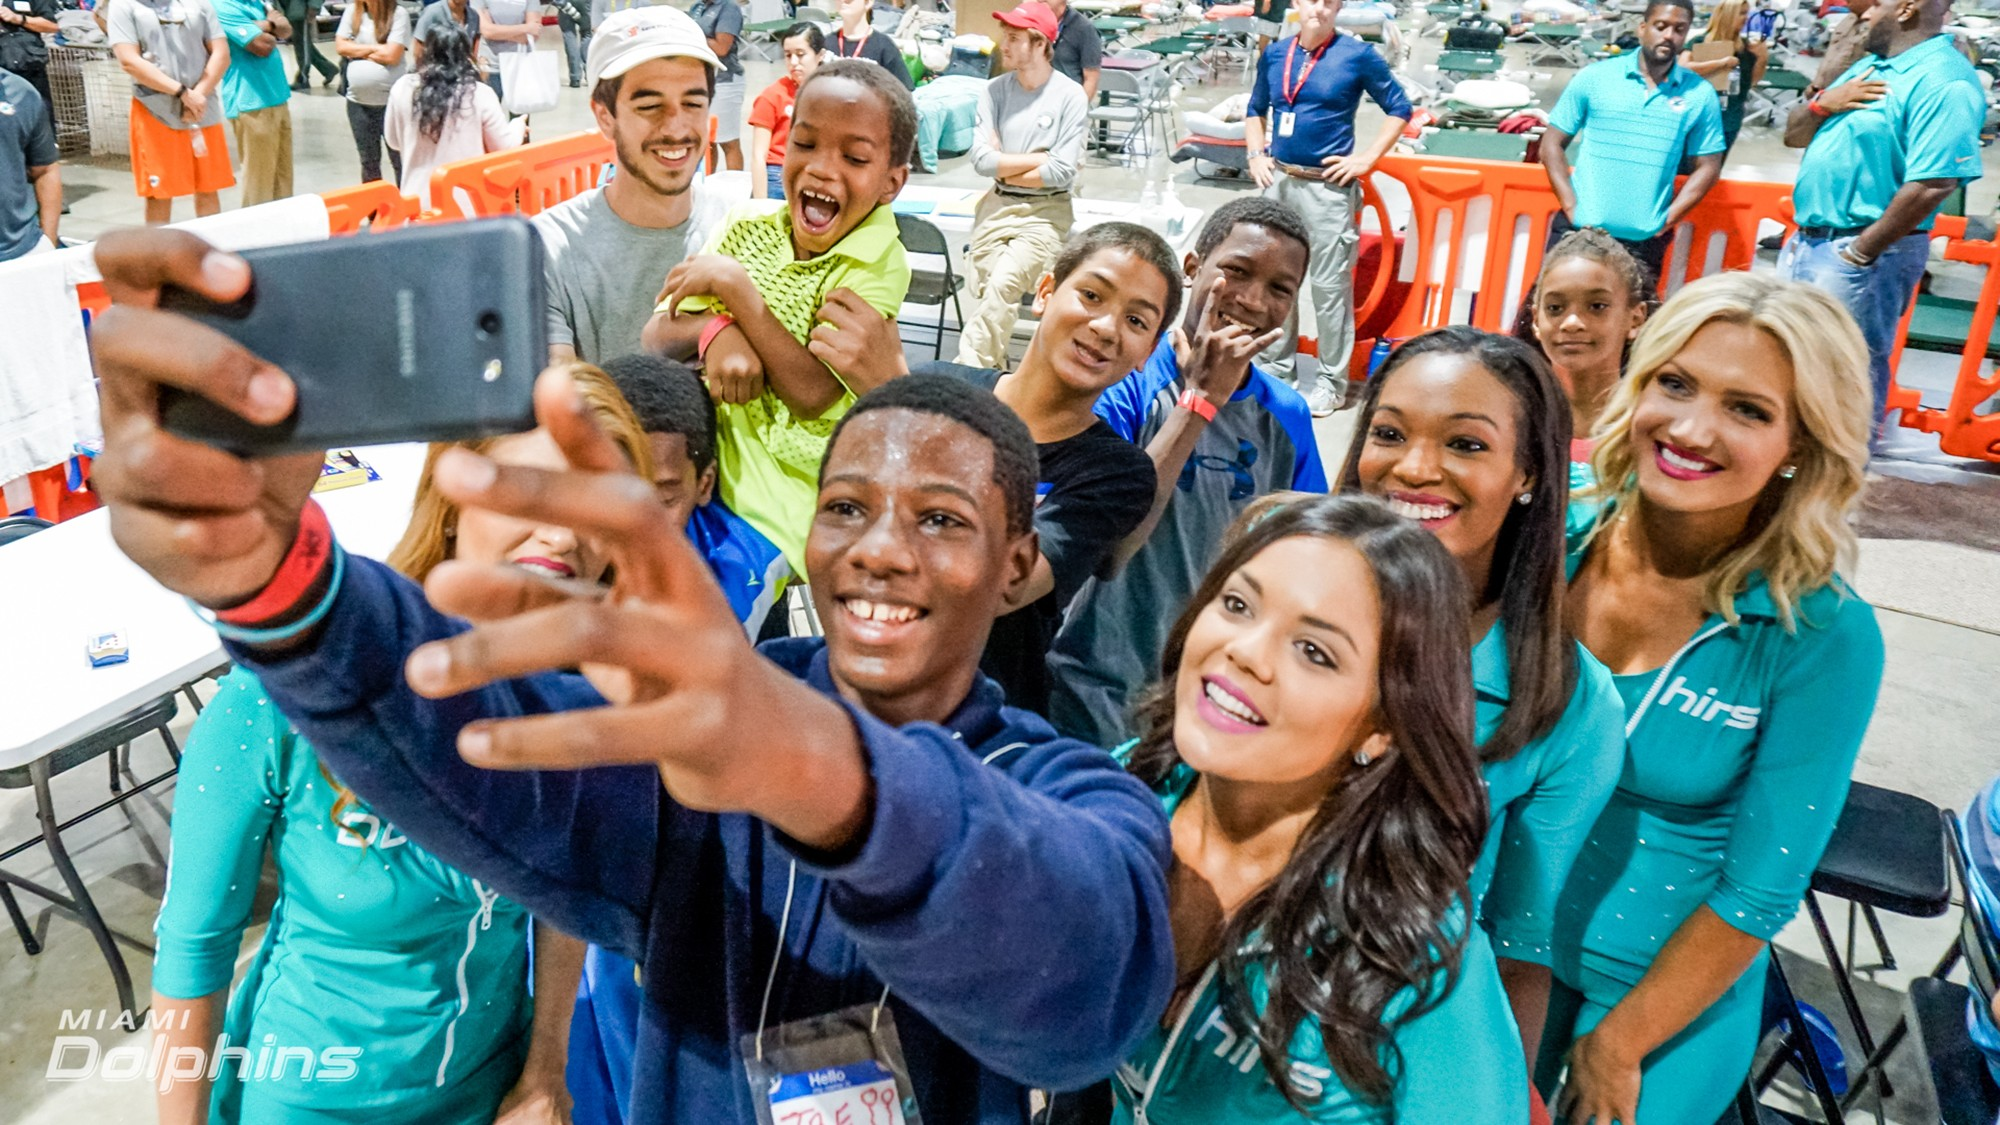 Fan takes selfie with Miami Dolphins Cheerleaders at Red Cross Shelter